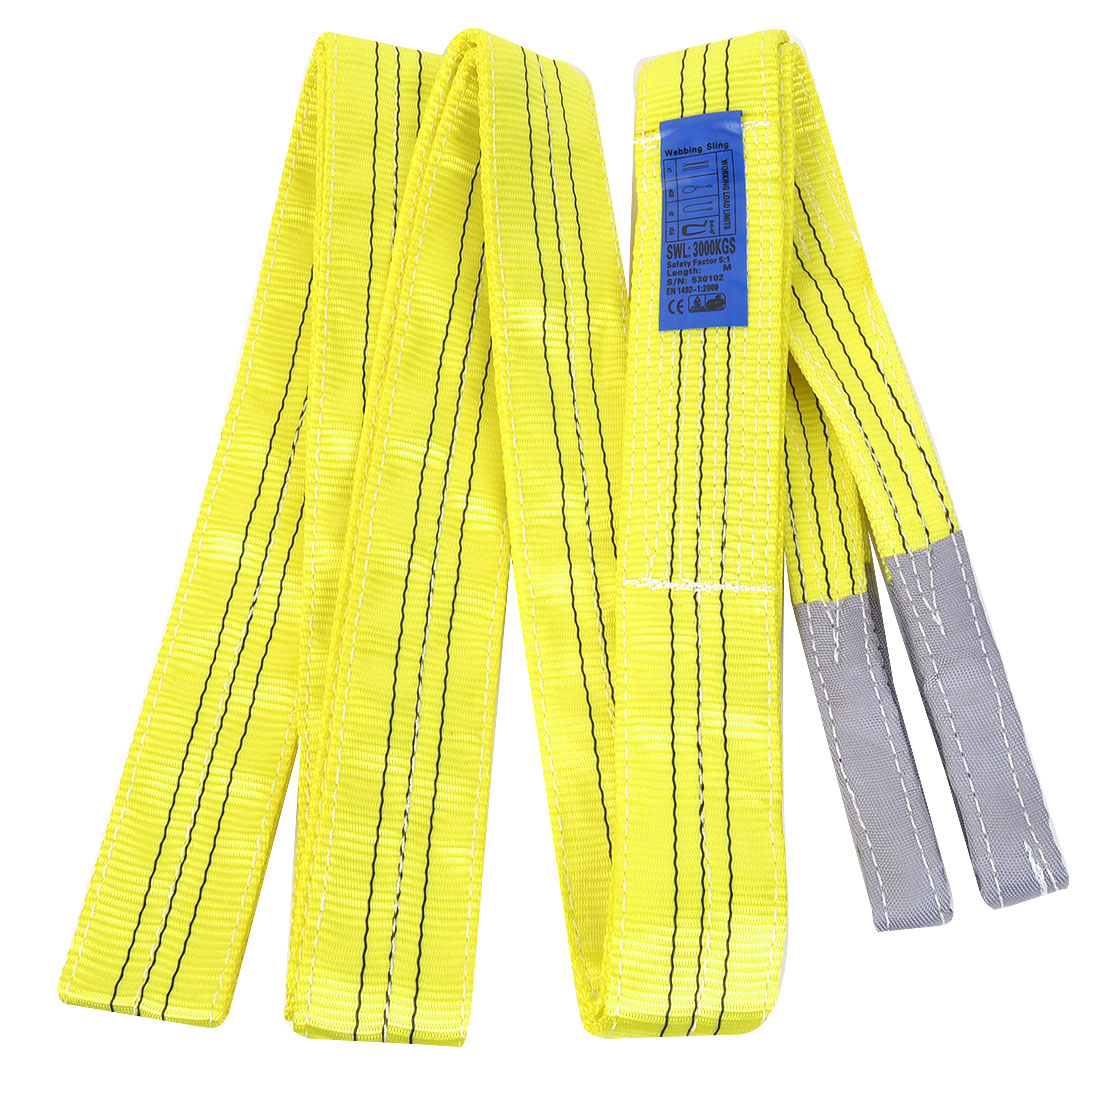 5M Length 7.5cm Width 3 Ton Yellow Polyster Webbing Lifting Tow Strap